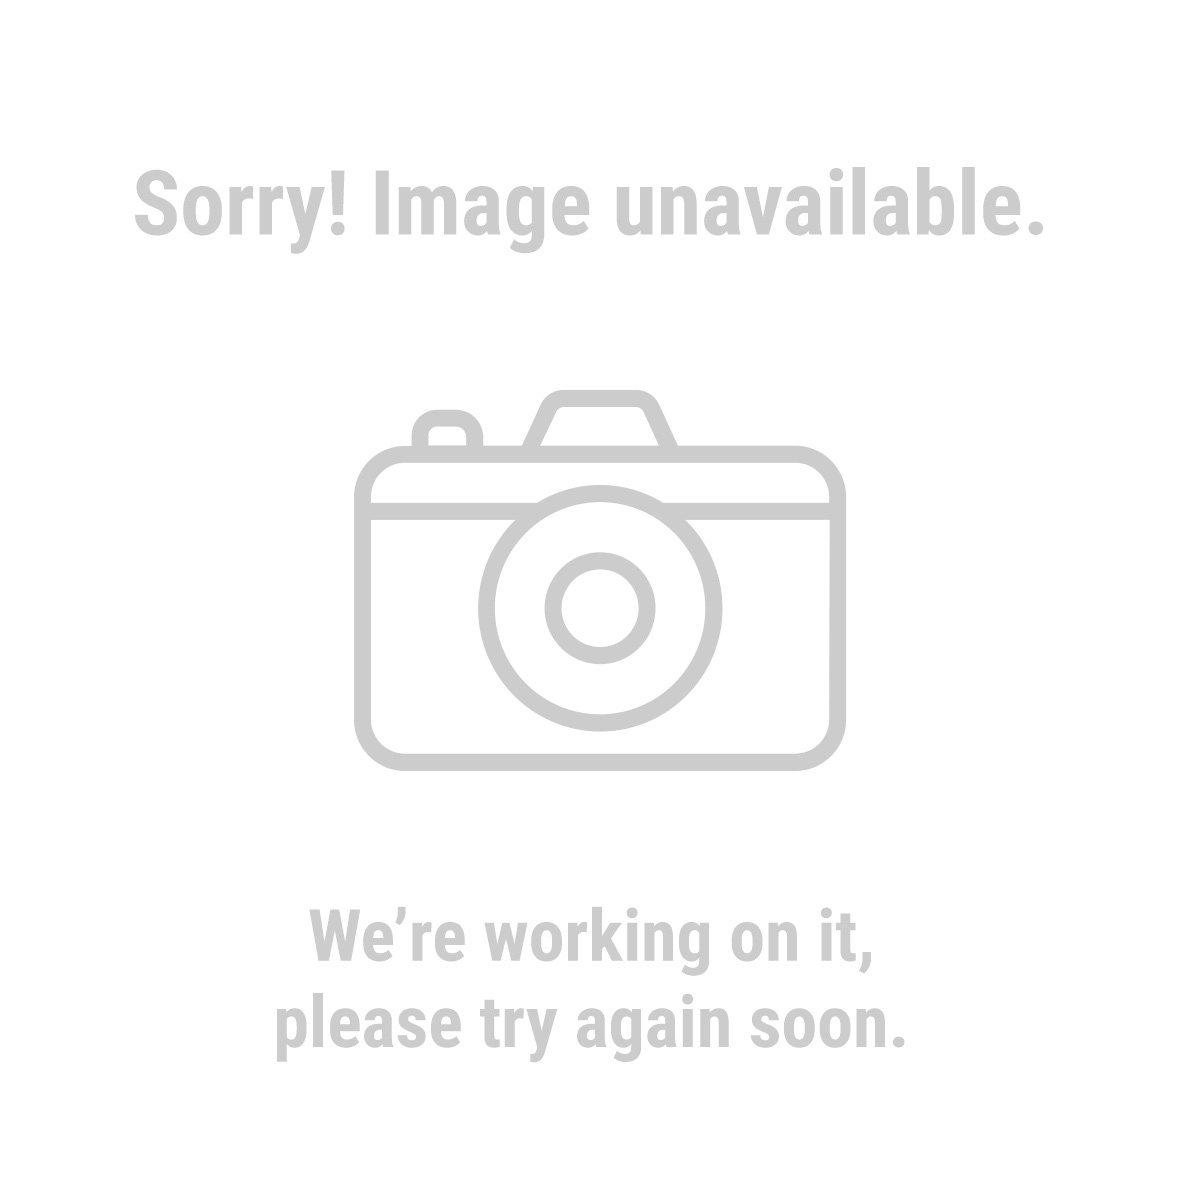 Haul-Master® 63150 400 lb. Capacity 1 in. x 15 ft. Ratcheting Tie Downs 4 Pc